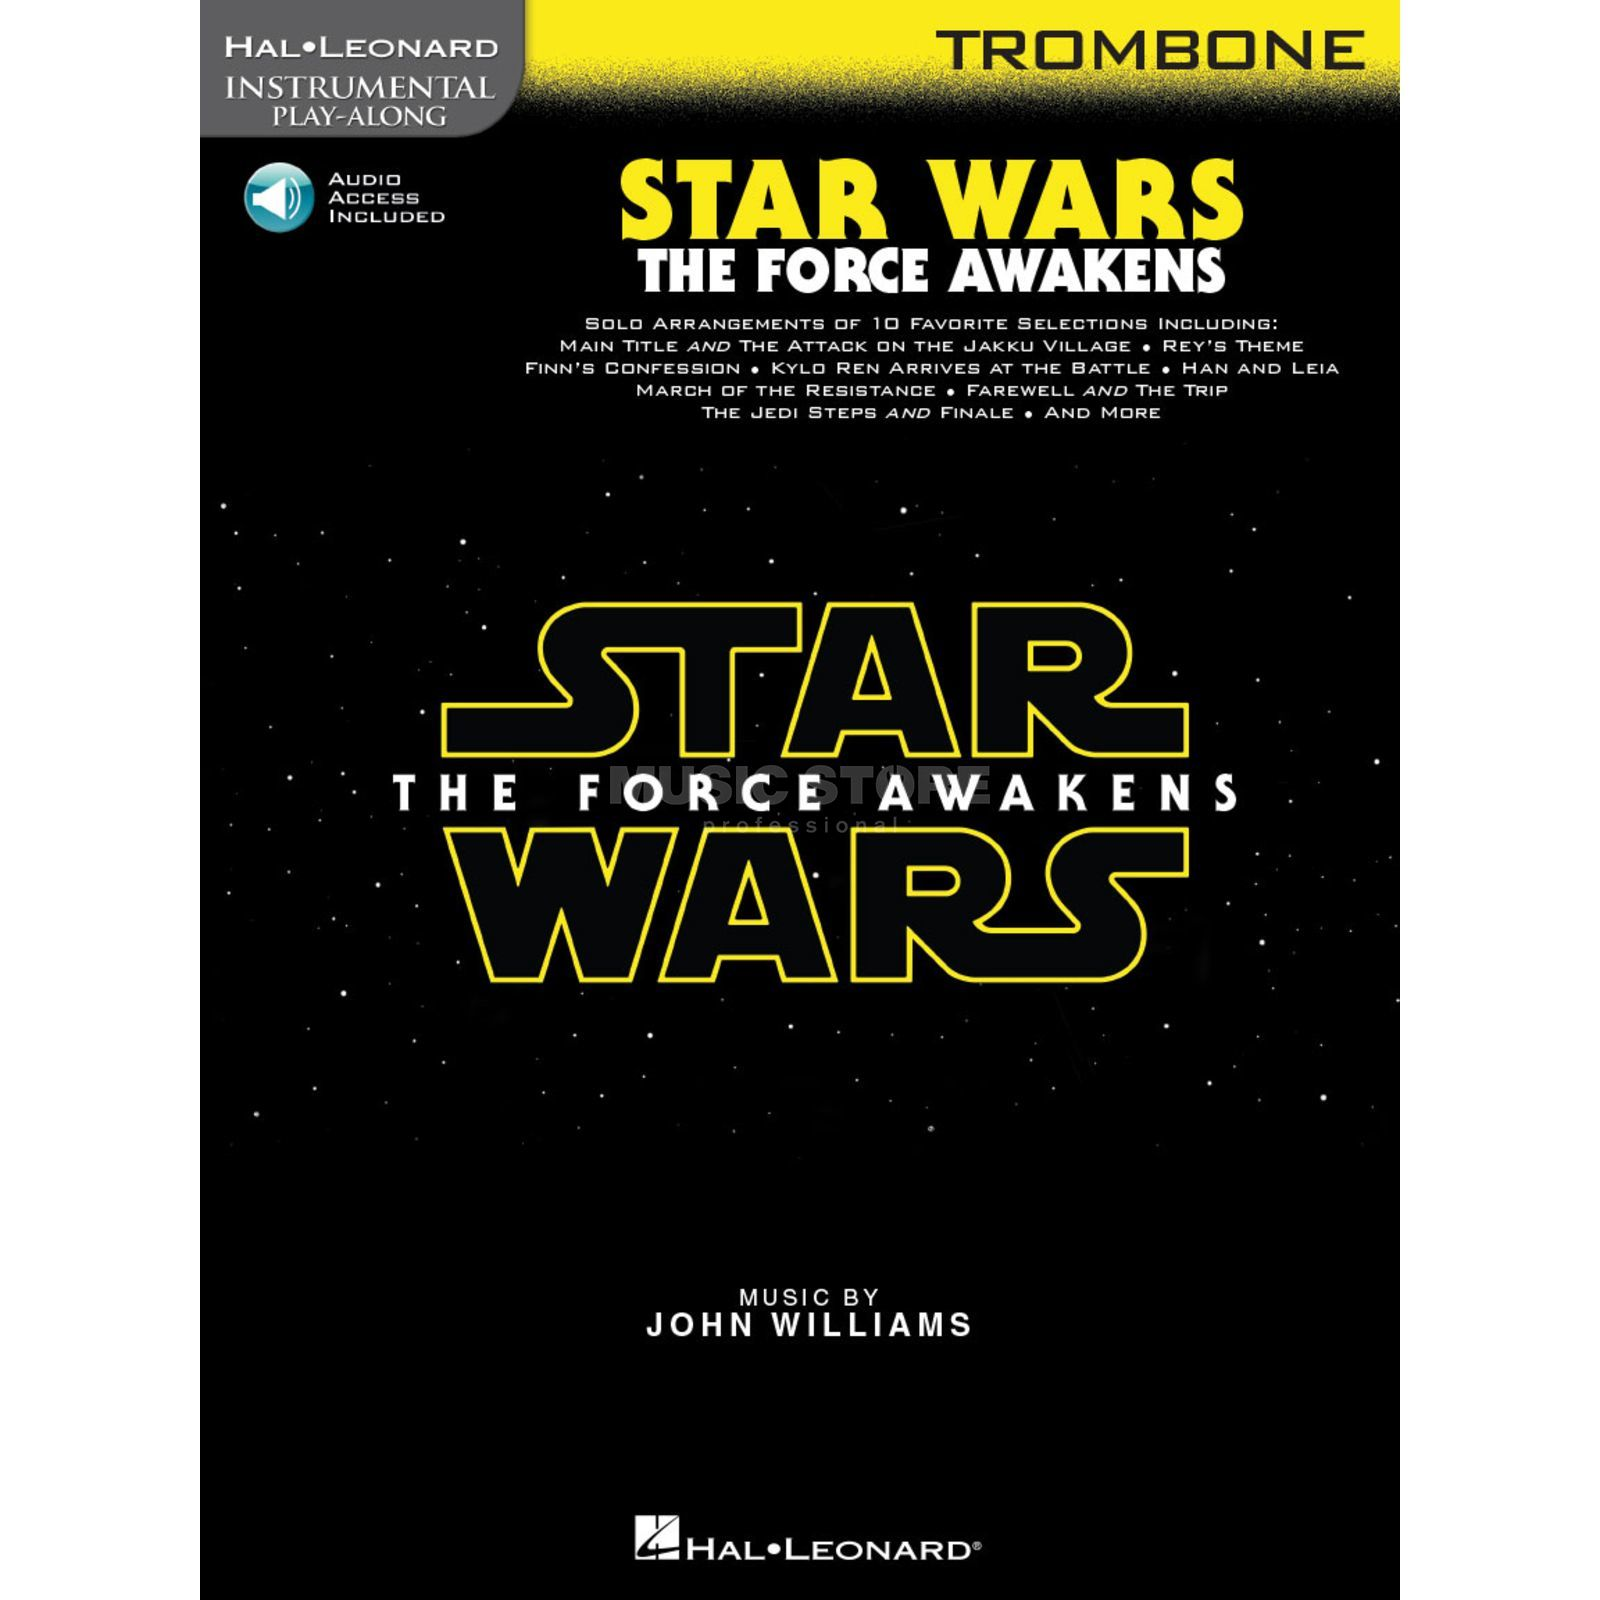 Hal Leonard Instrumental Play-Along: Star Wars - The Force Awakens - Trombone Produktbillede